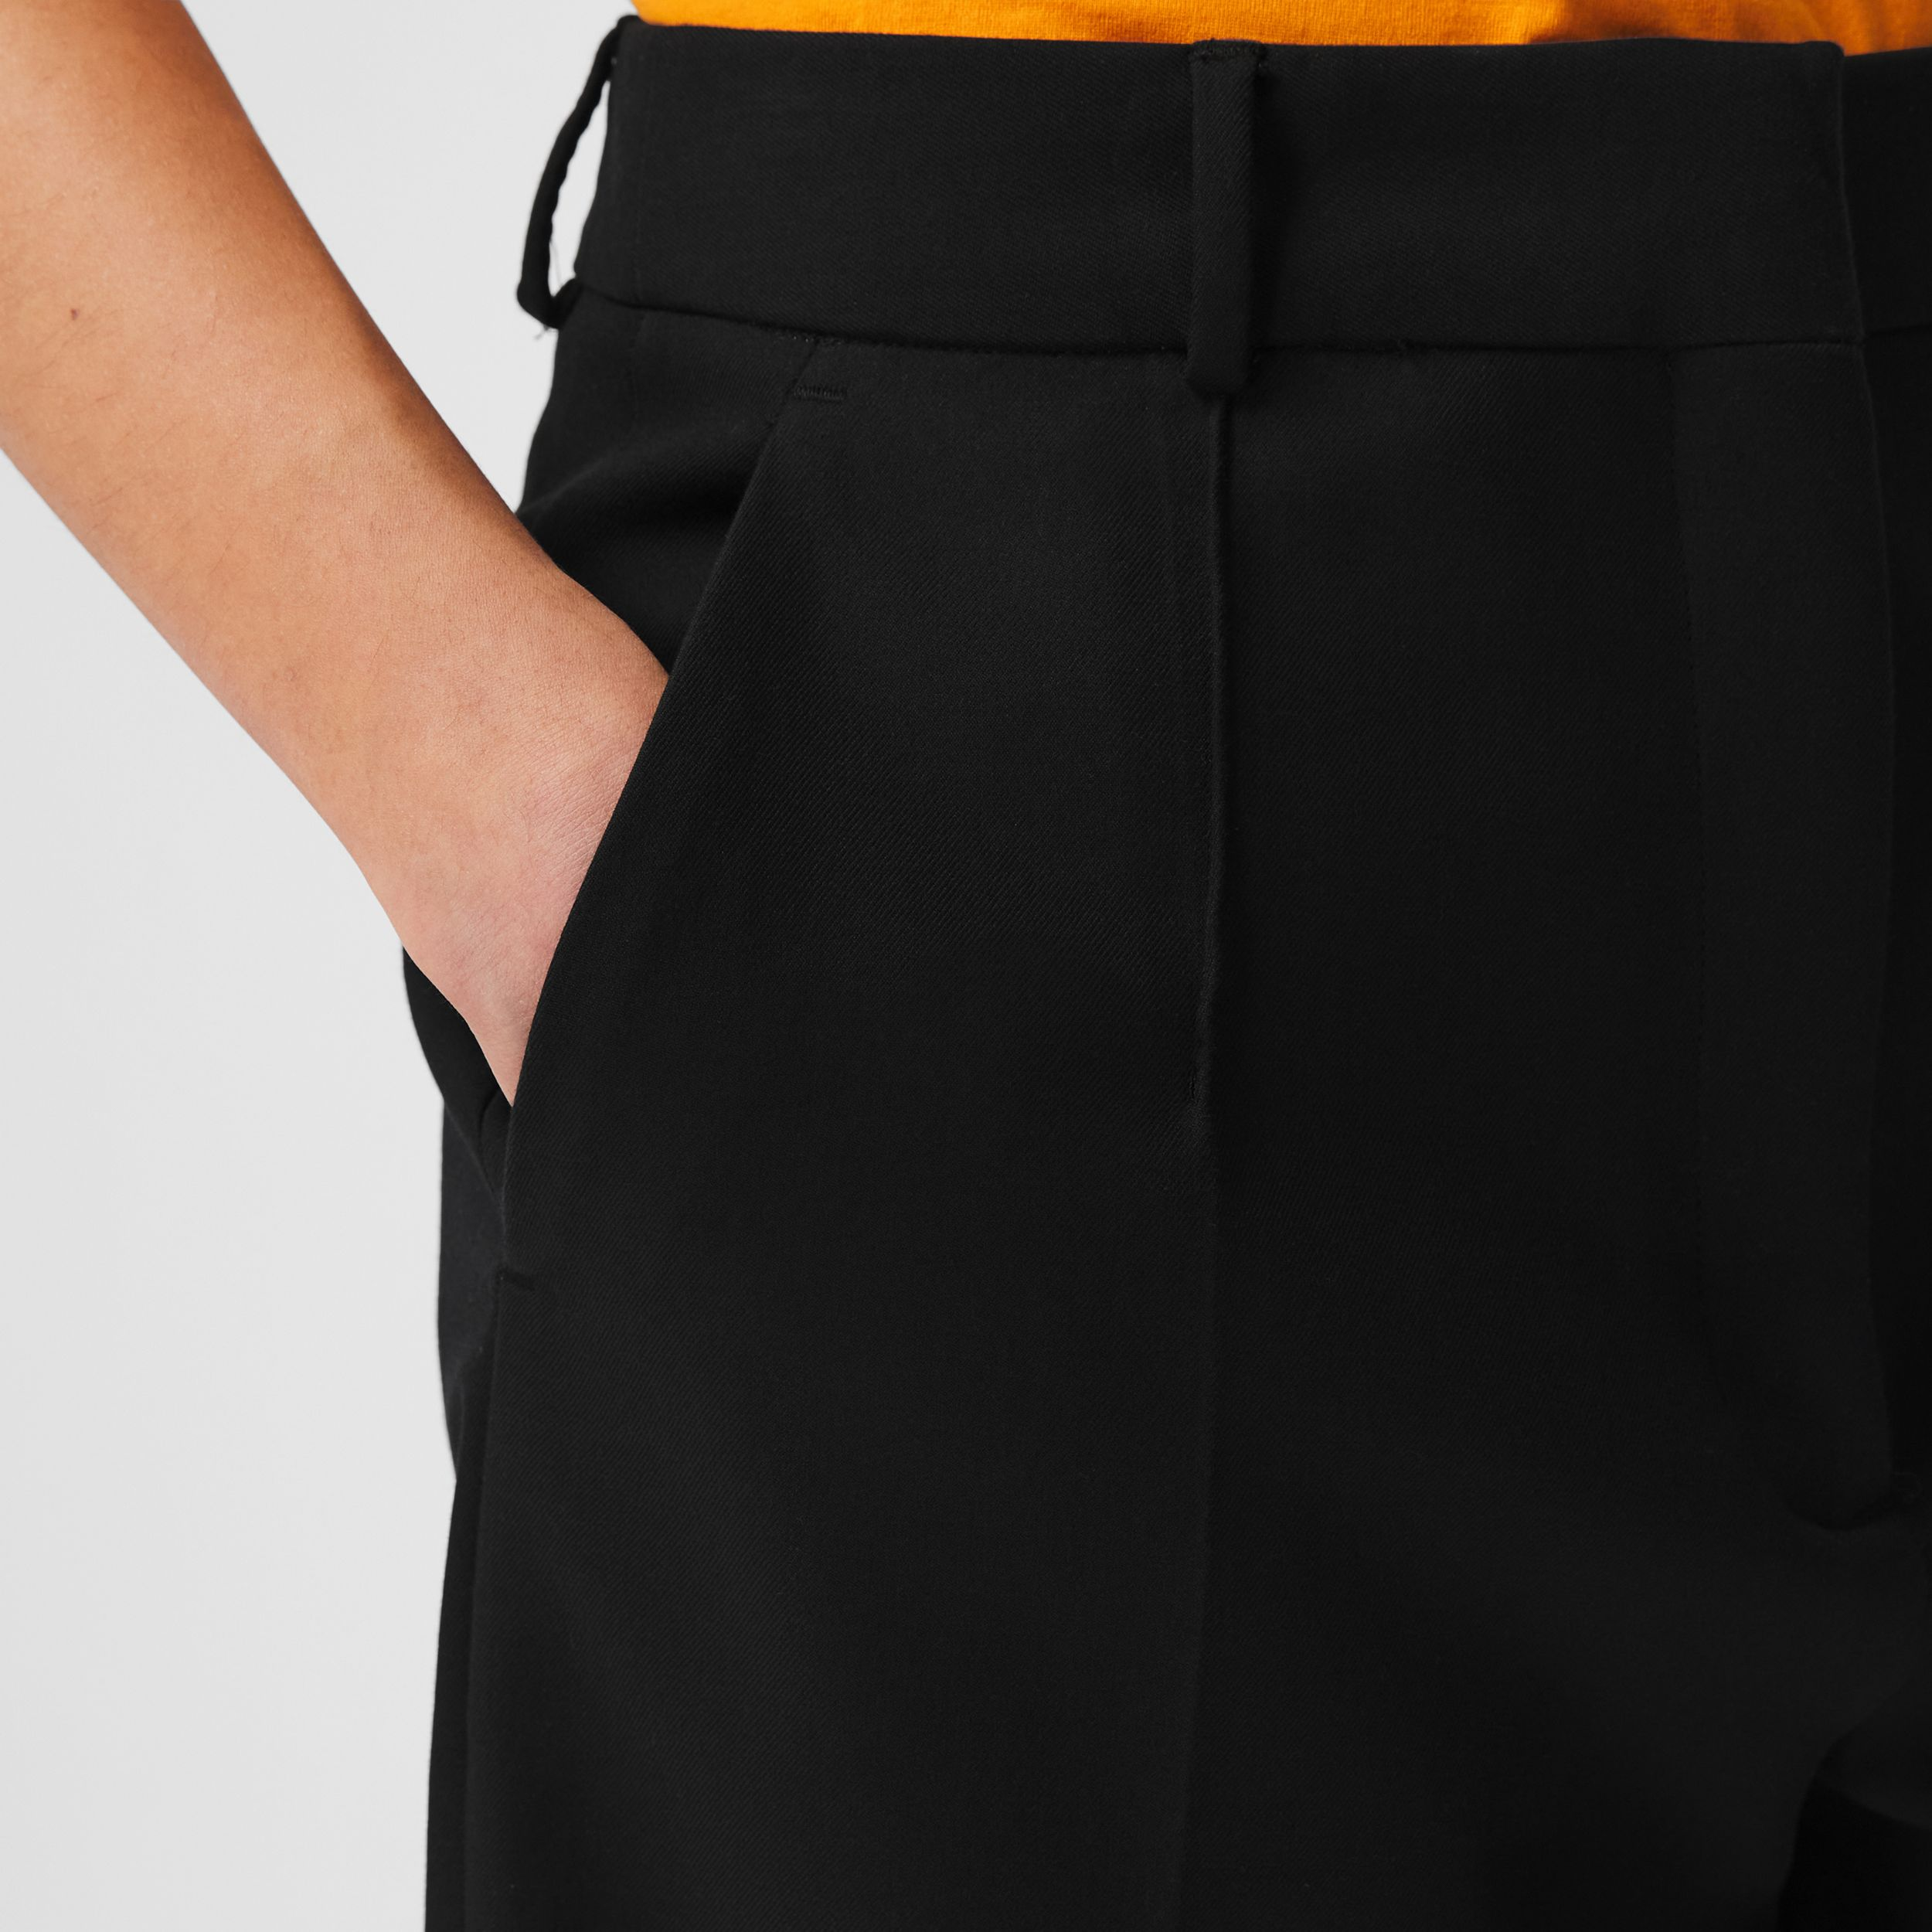 Cotton Twill Wide-leg Shorts in Black - Women | Burberry - 2